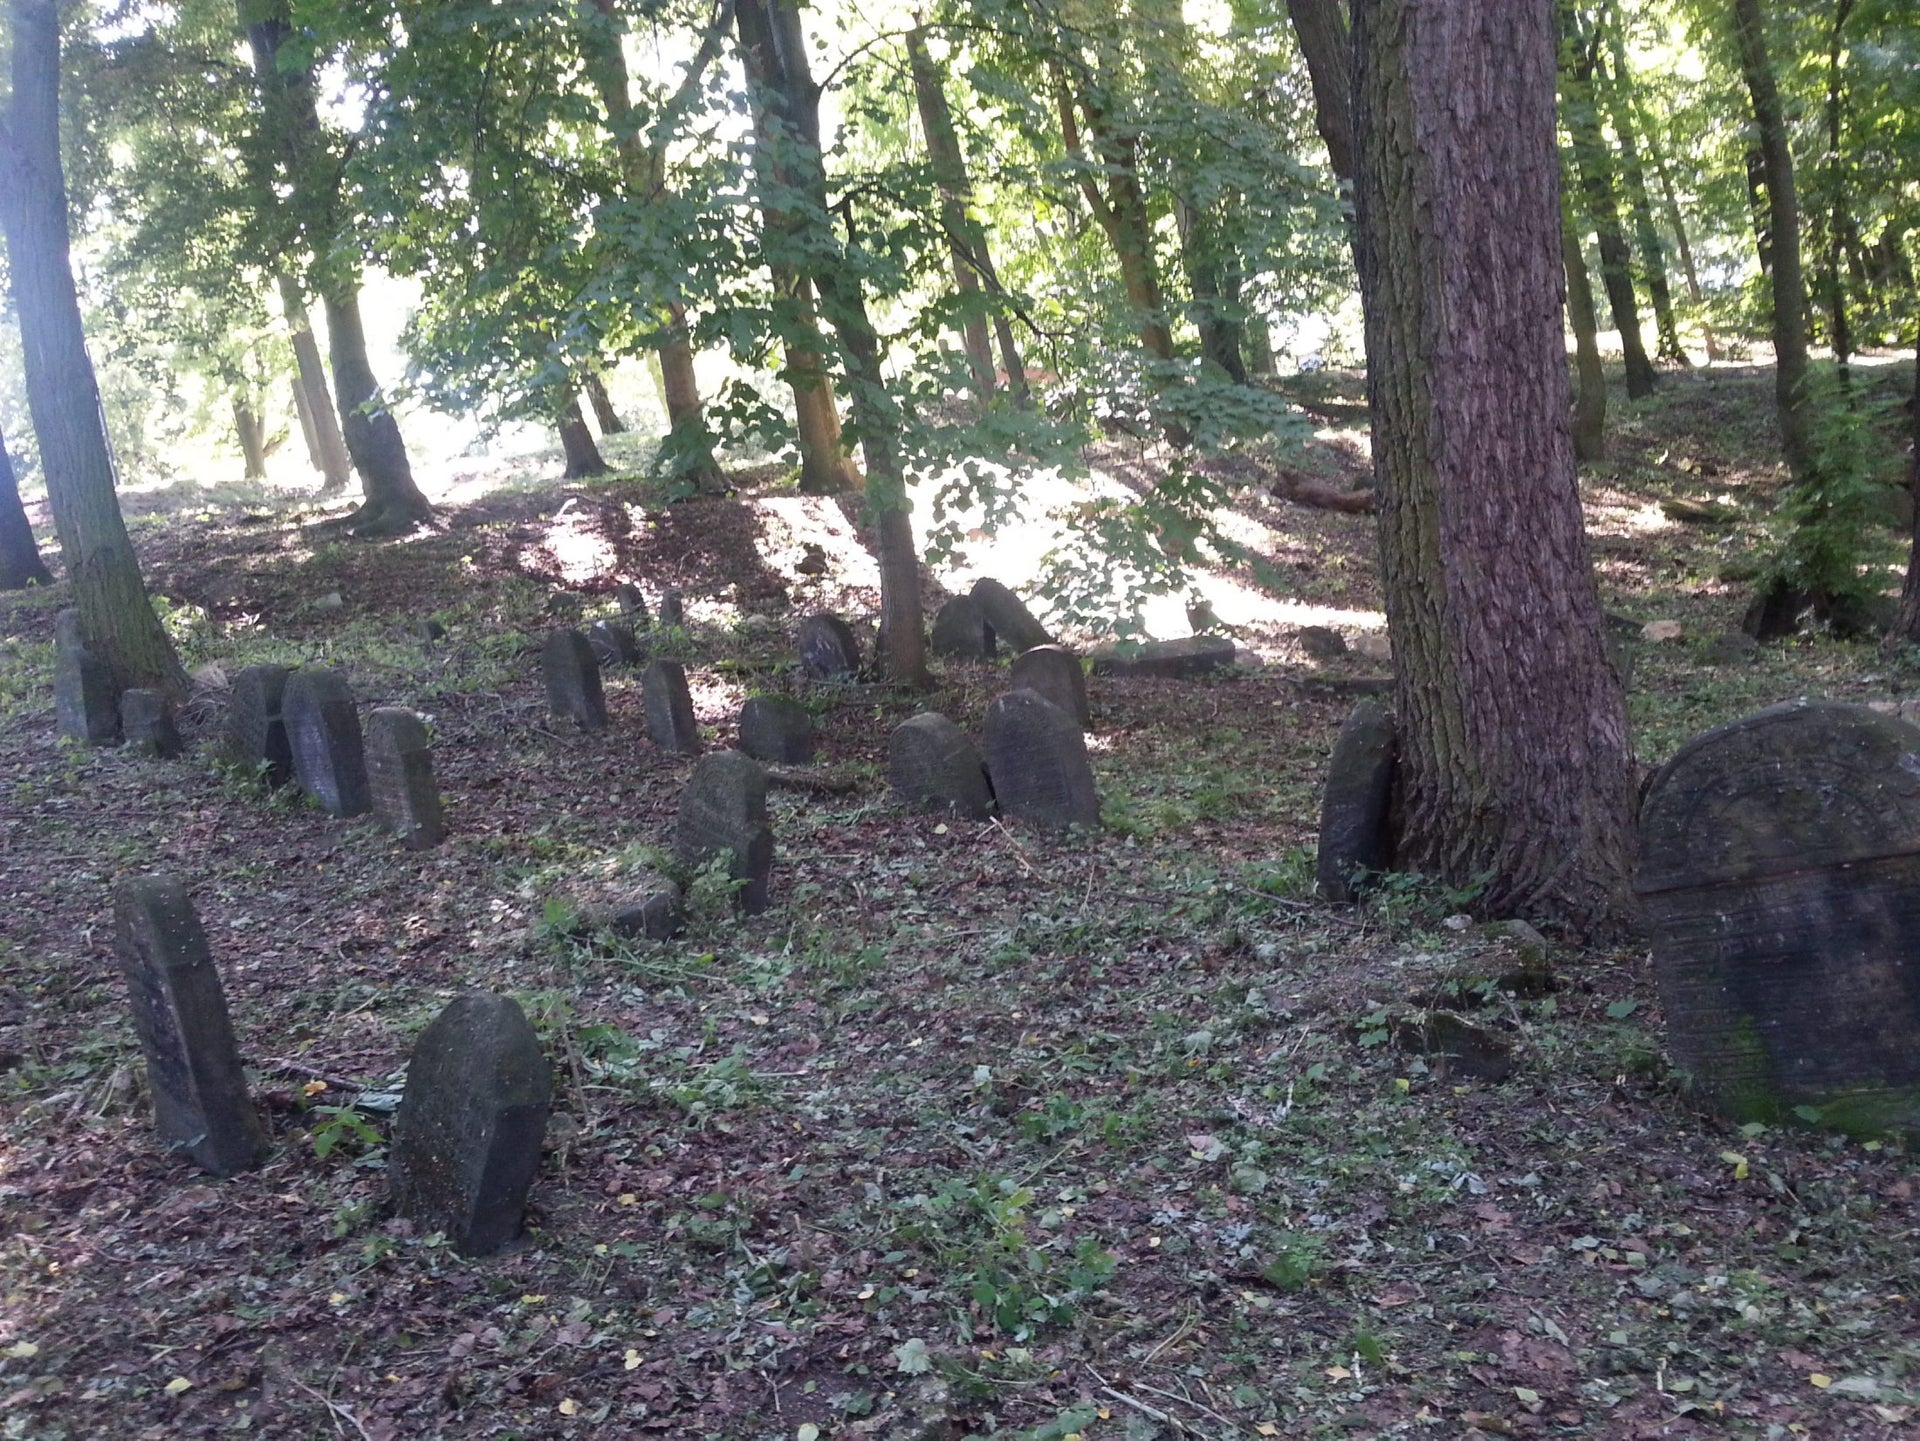 A neglected Jewish cemetery in Poland. Now, 90 non-Jewish volunteers are working on a special project aimed at raising awareness of the country's Jewish history.